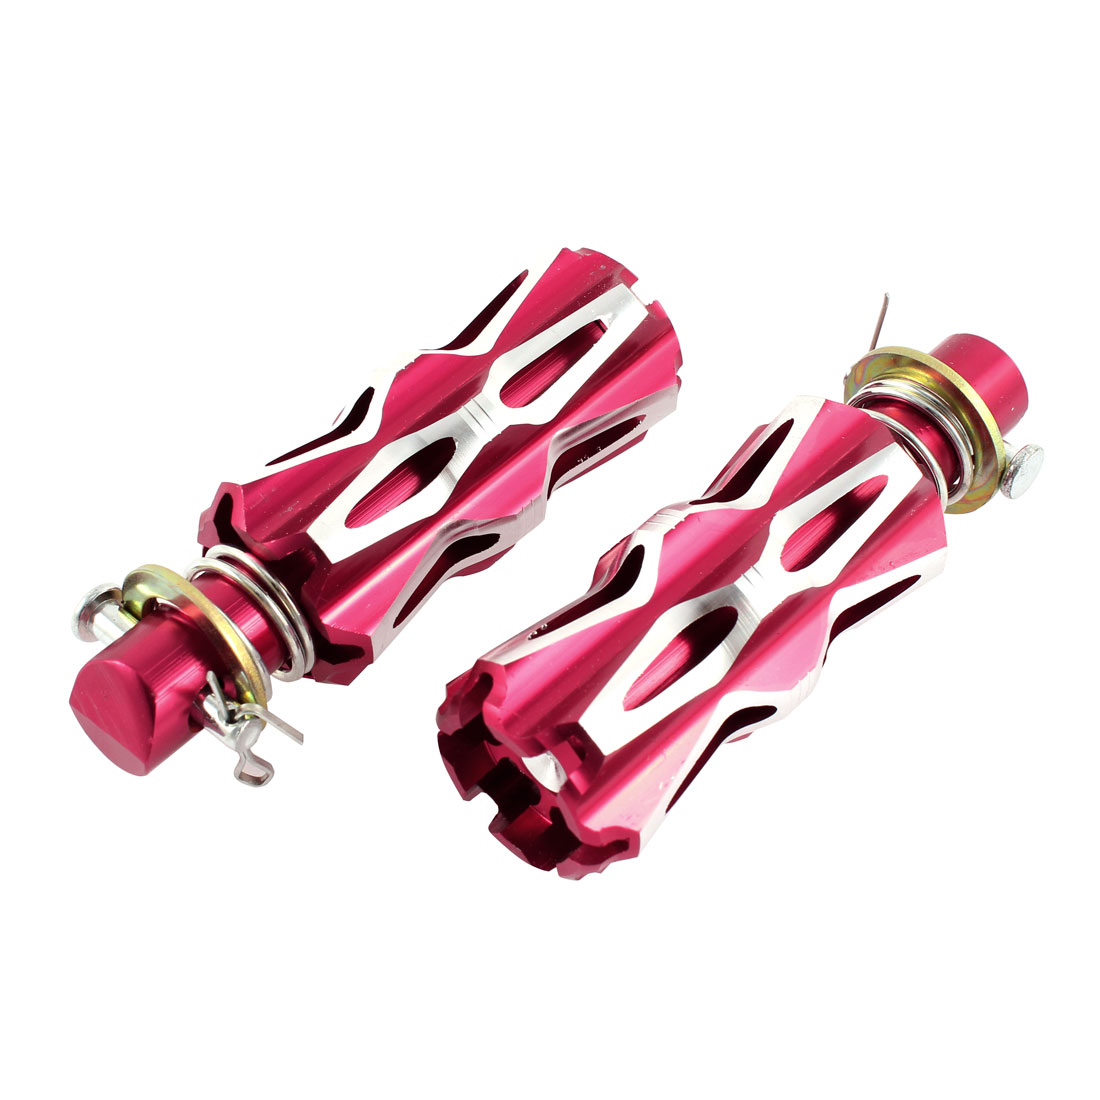 Pair Red Silver Tone Torx Shaped Aluminum Motorcycle Bicycle Foot Pegs